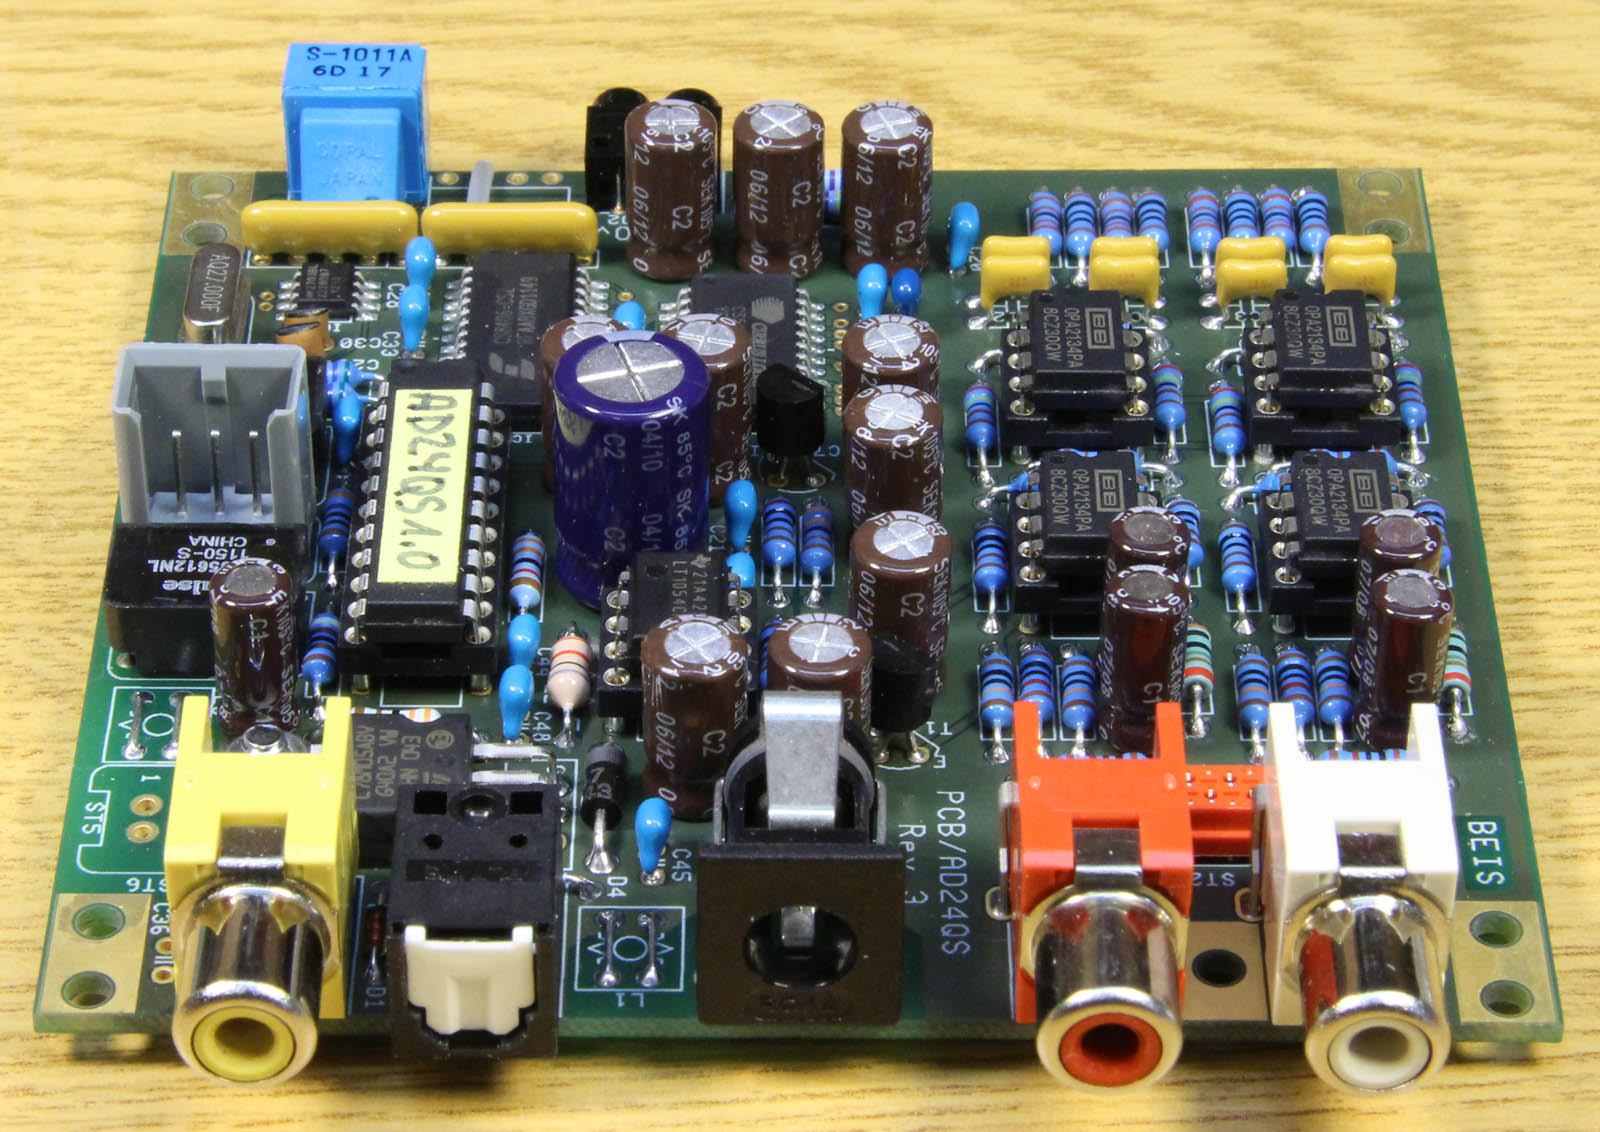 Ad24qs Audio Analog To Digital Converter 24 Bit 192 Khz Wiring Diagram Moreover Xlr 1 4 Mono On Trs Rca The Unbalanced Inputs Have A Sensitivity Matching Usual Cd Or Dvd Player Output Level Of 2 Vrms